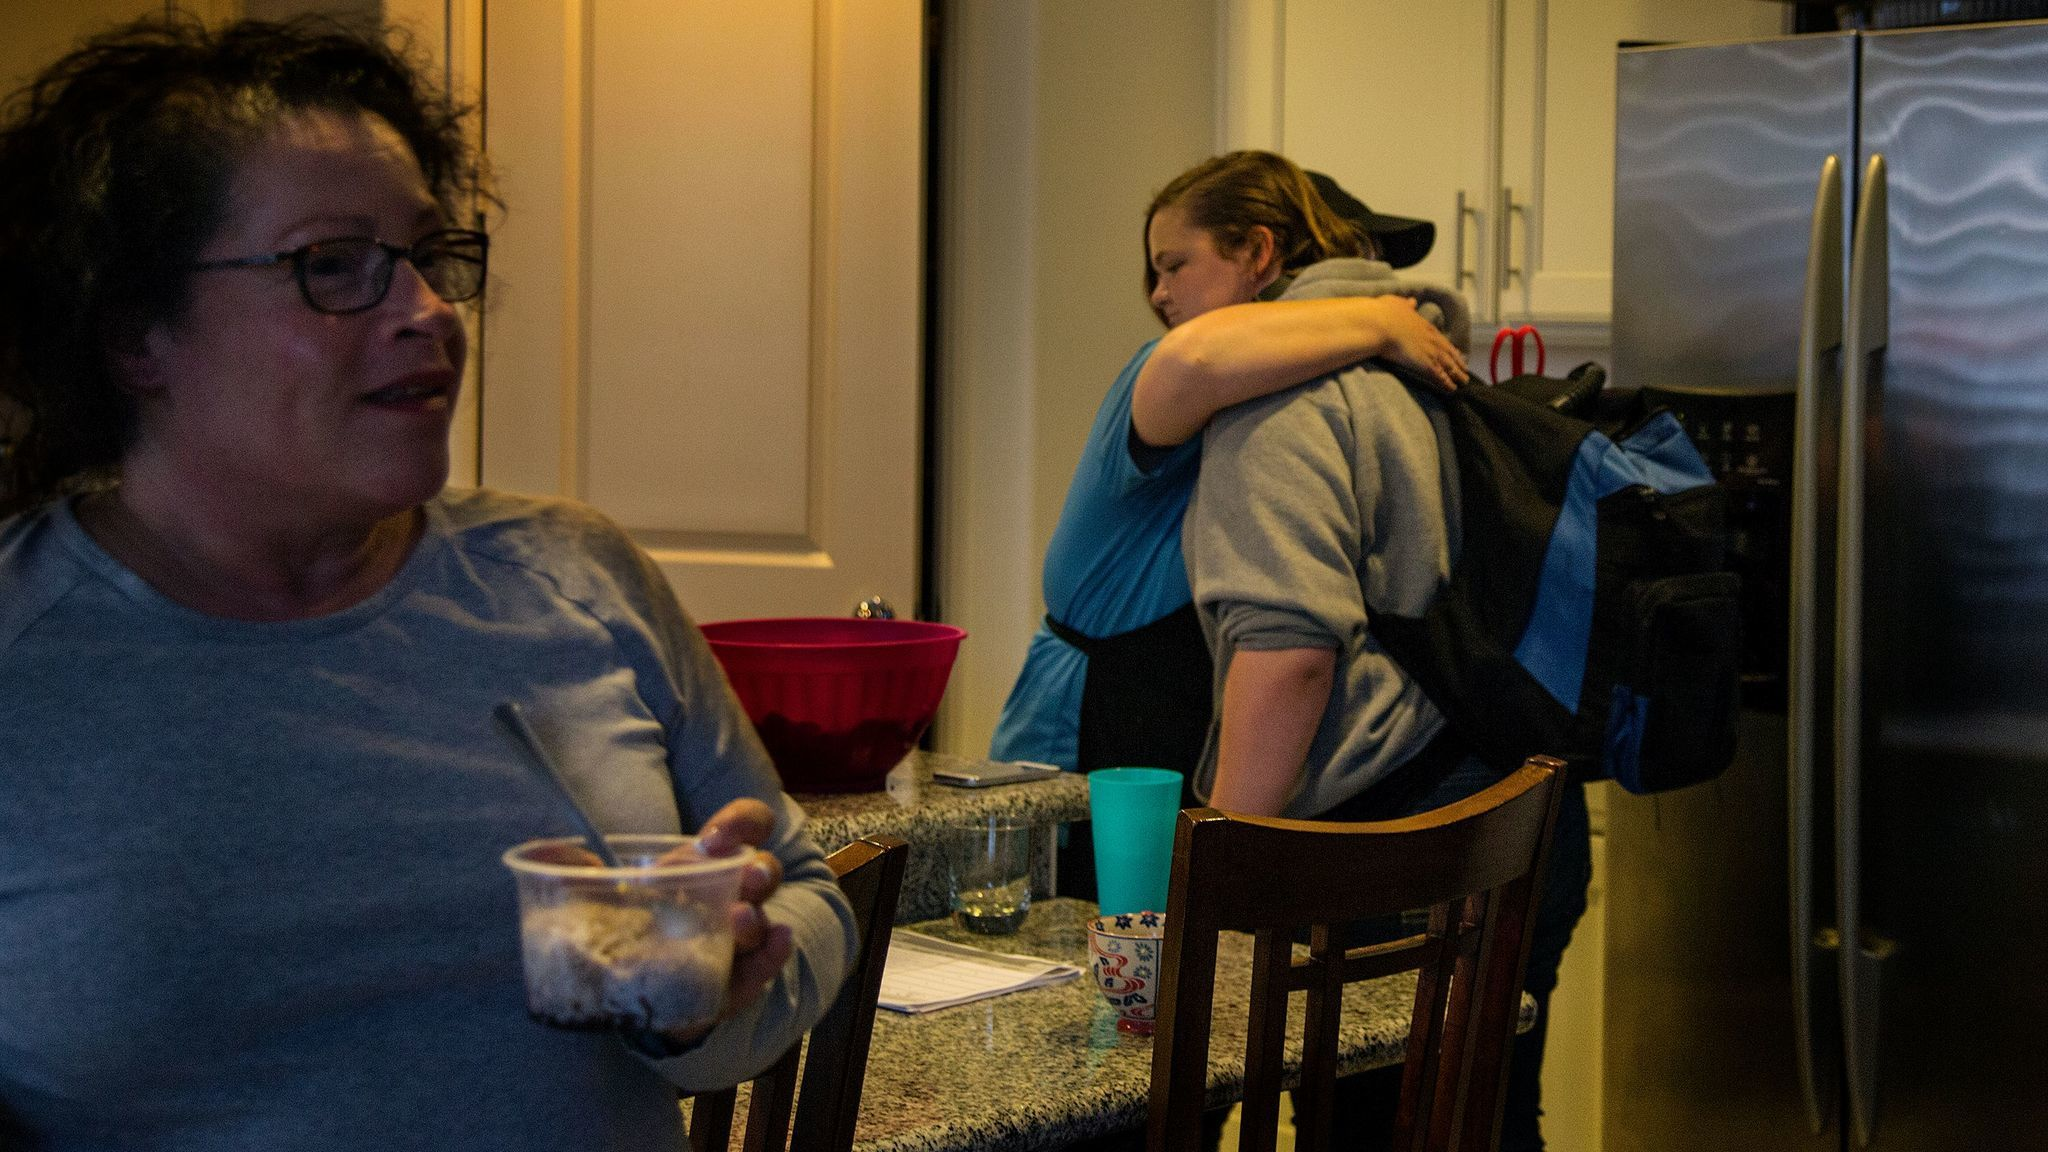 Jennifer Savit, a former inmate, embraces her 13-year-old daughter, Alissa Balcombe. The two share transitional housing in Eastvale with Monique Barr, left, and four other adults. Savit said it has kept her family from homelessness.